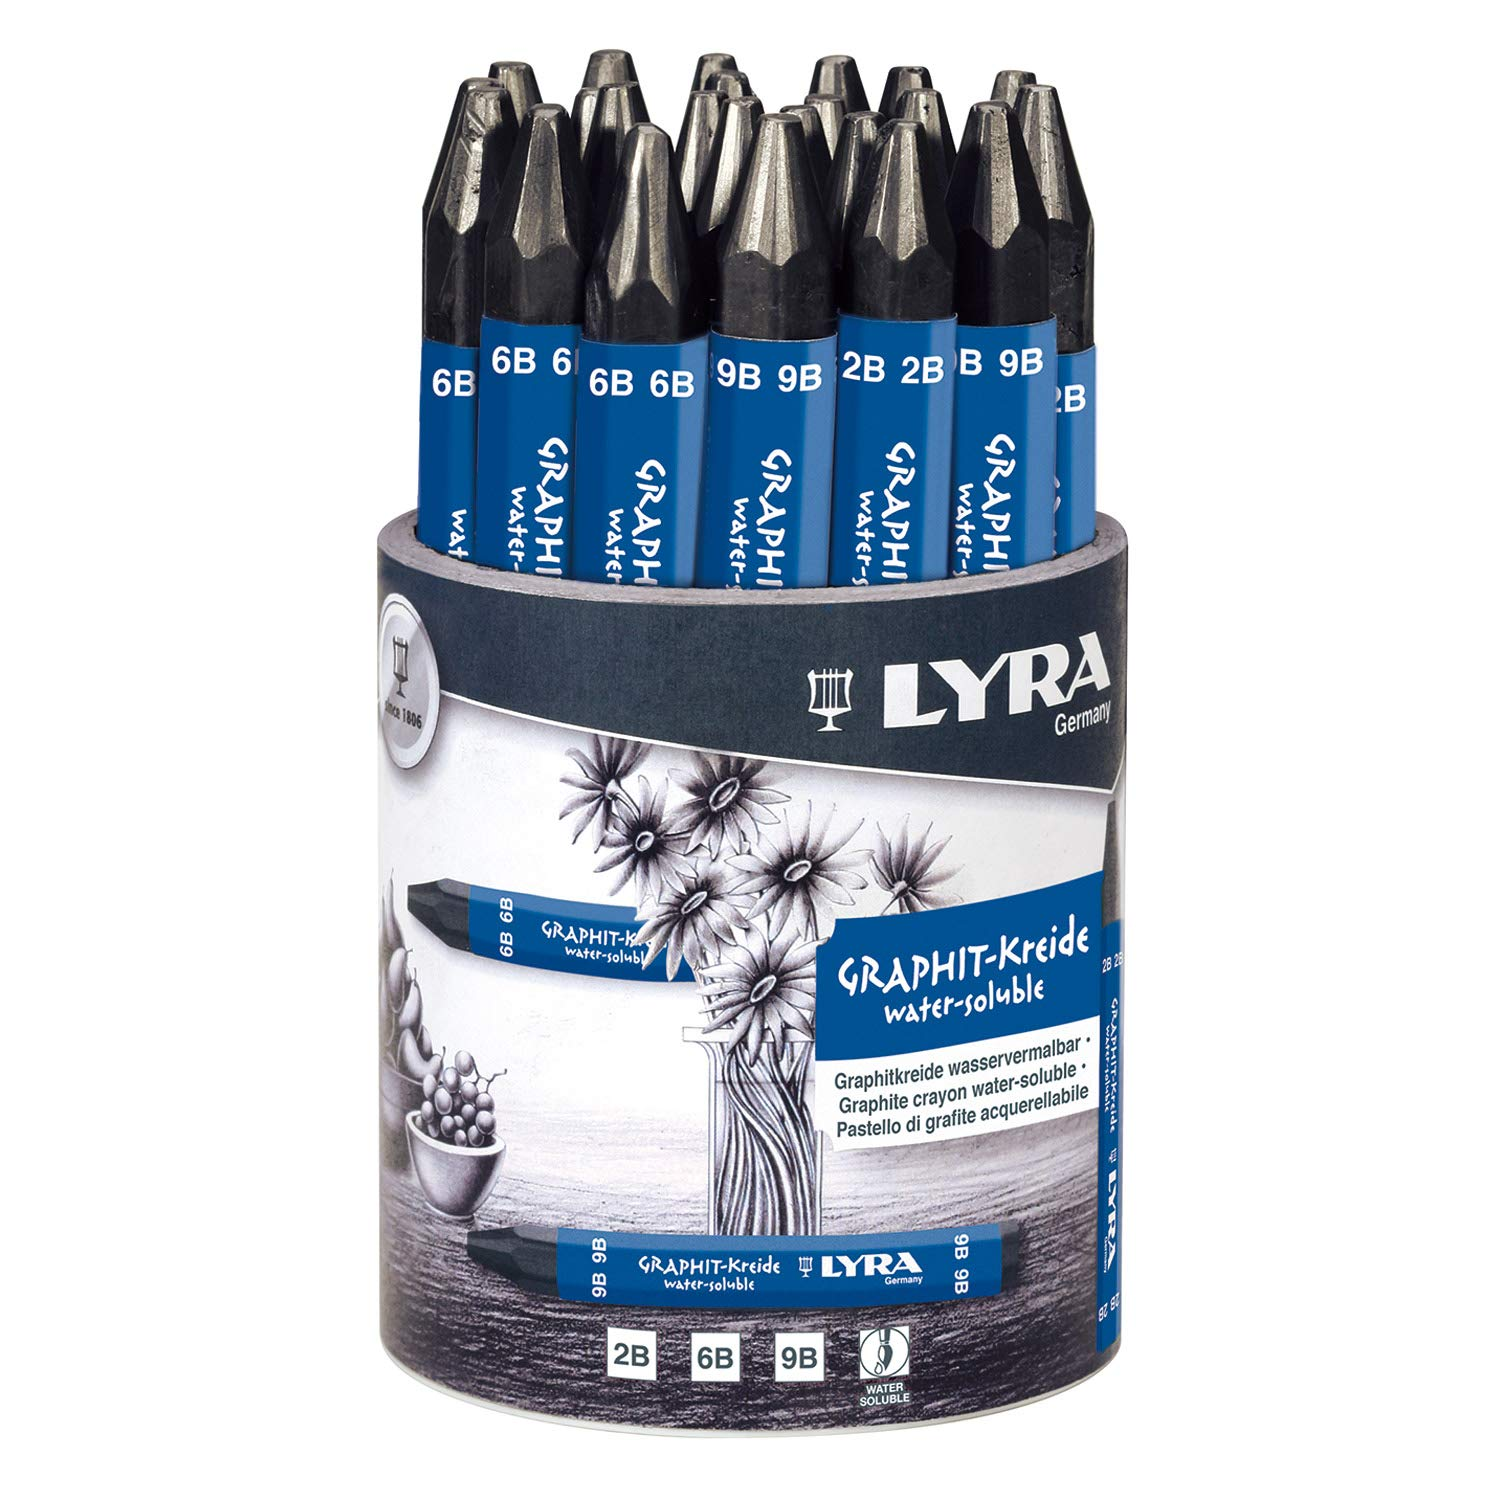 LYRA Graphite Crayons, Assorted Degrees, Water-Soluble, Set of 24 Crayons, Black (5633240) by Lyra